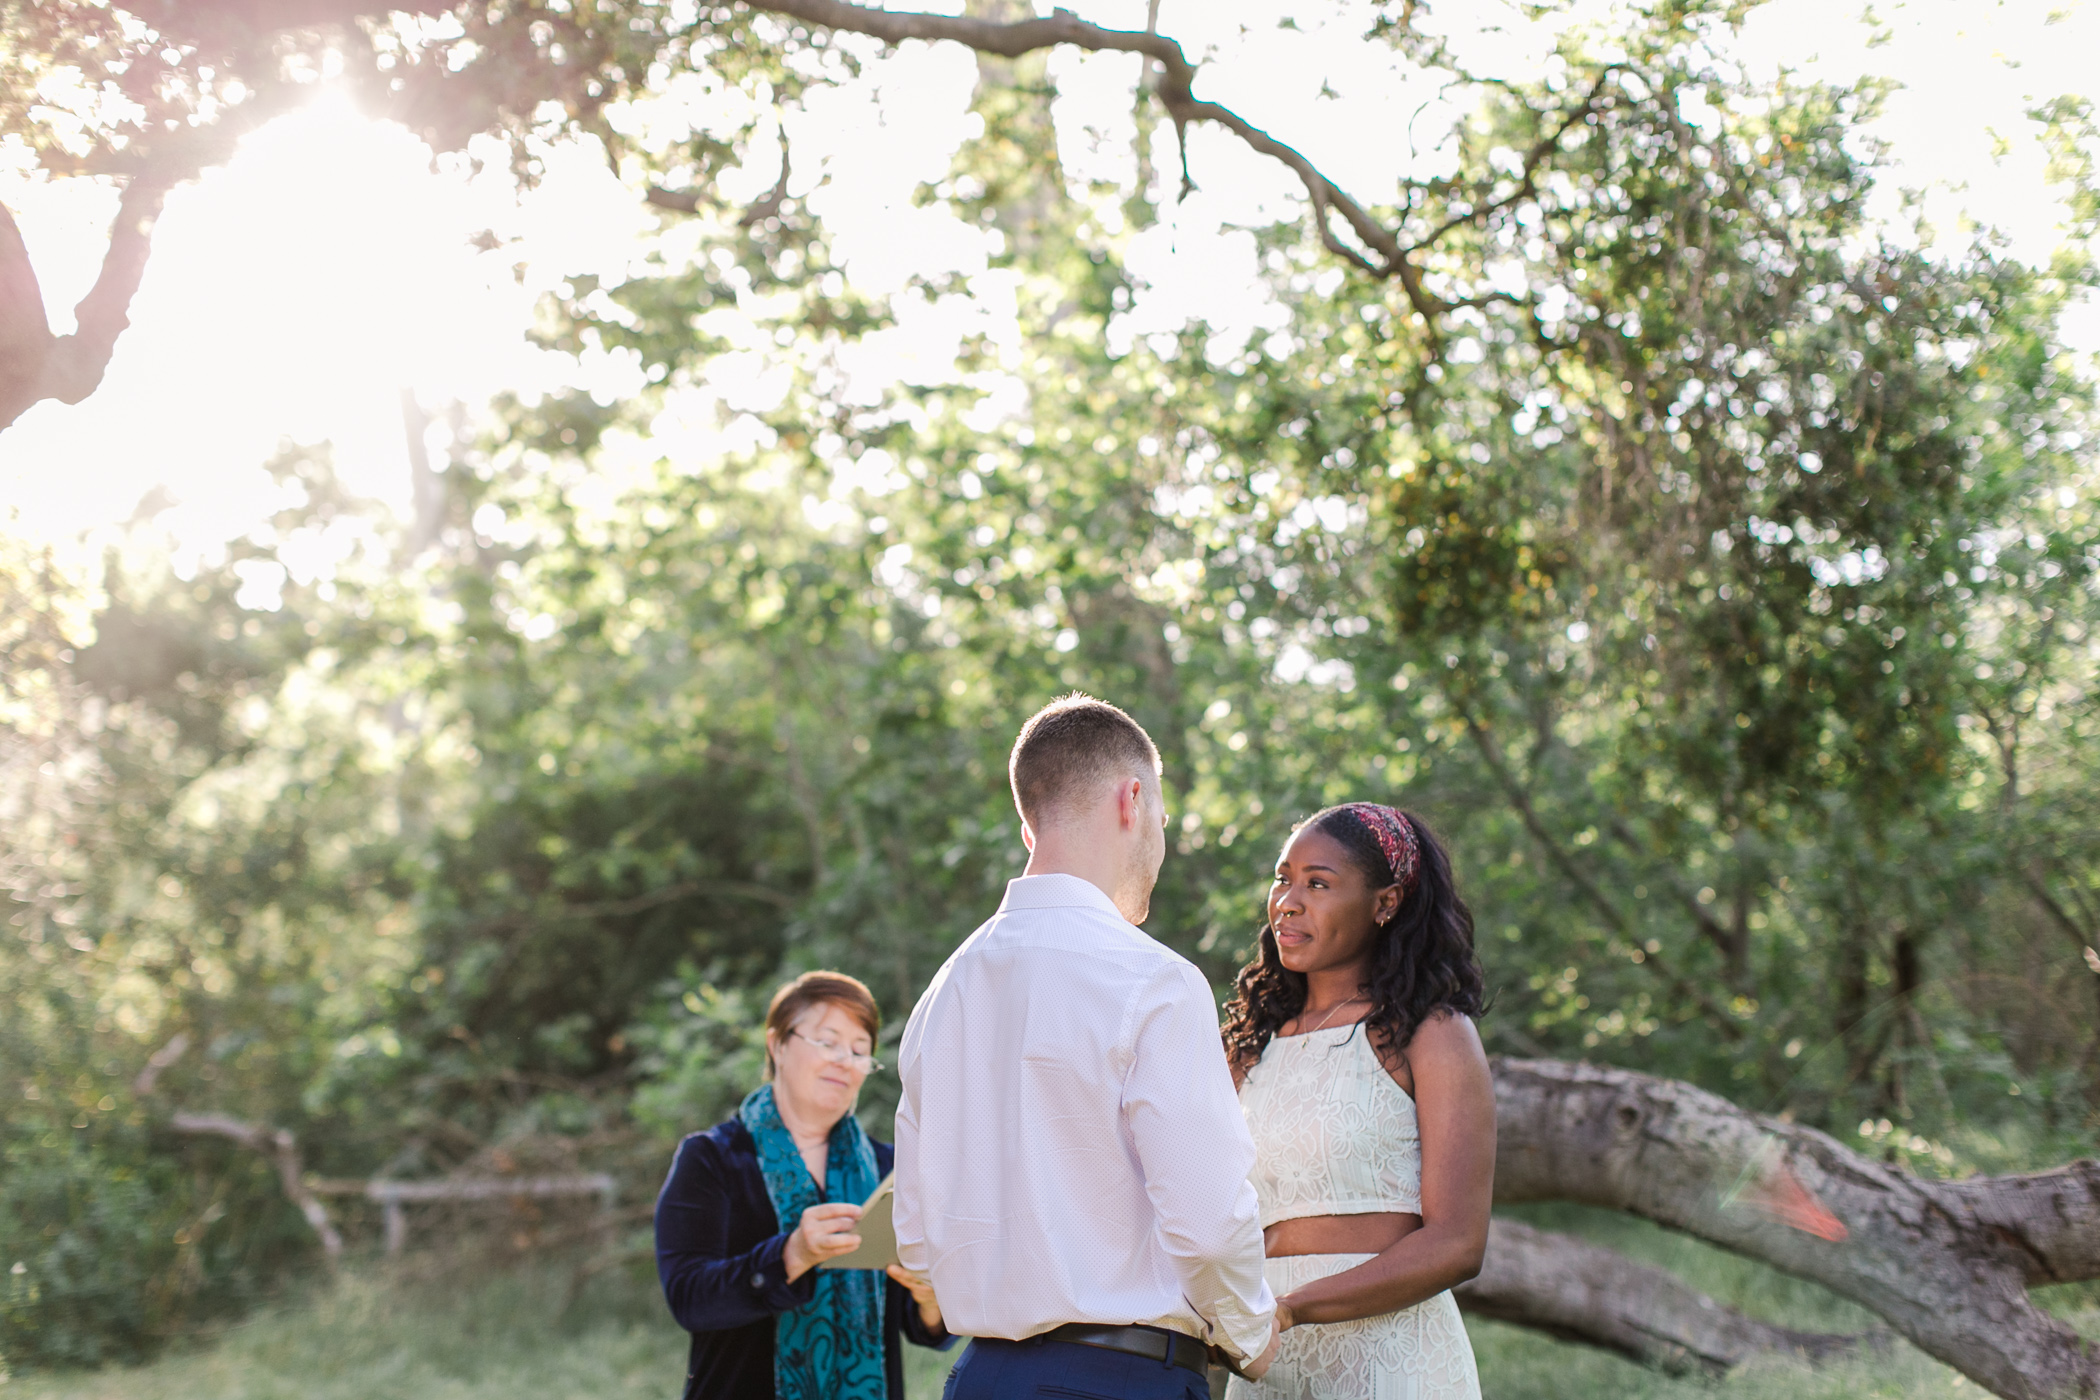 Outdoor elopement photography for adventurous couples